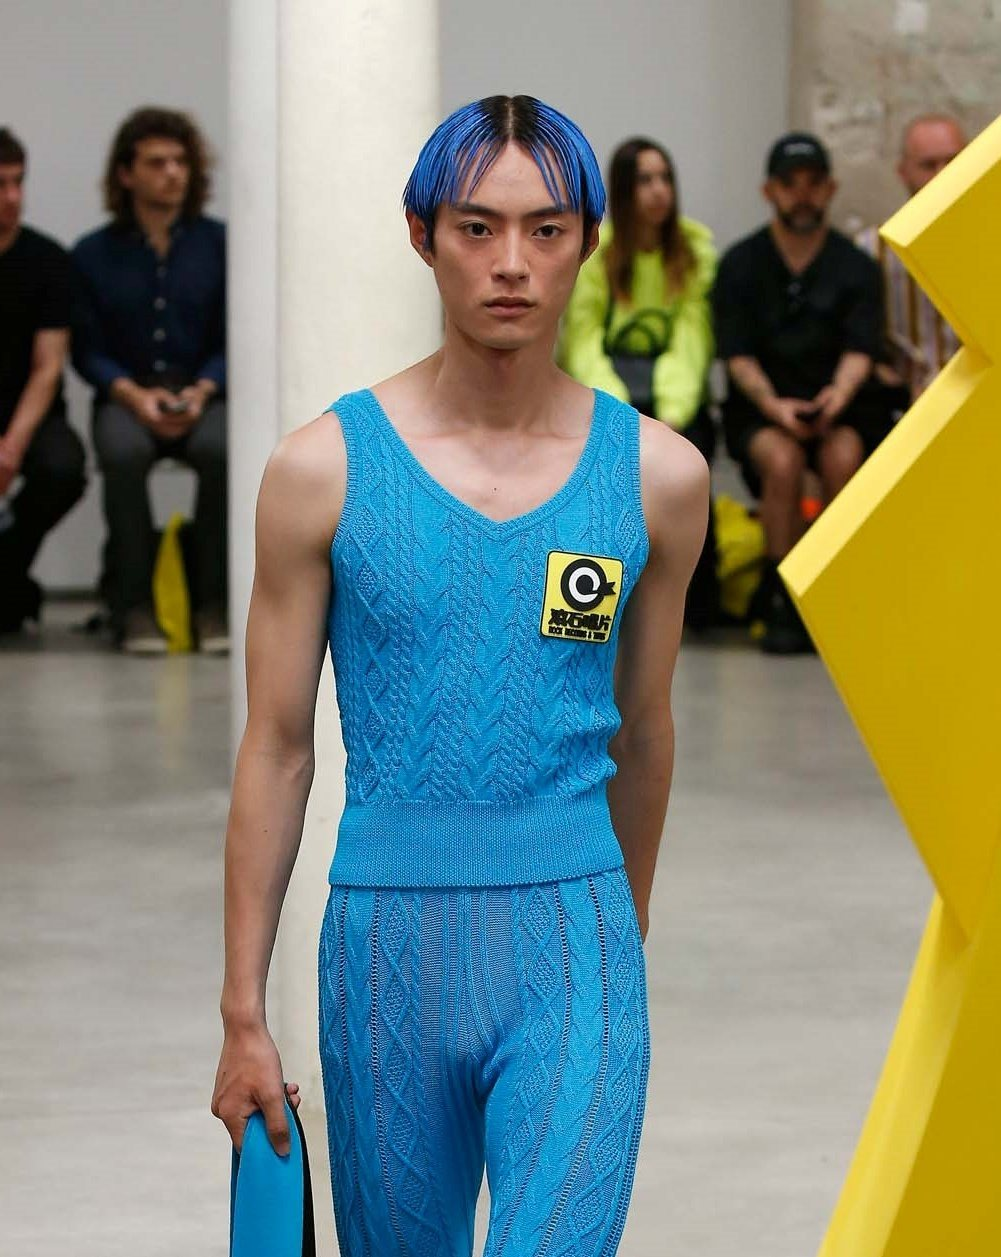 Man with blue hair wearing a blue top and pants walking on the runway